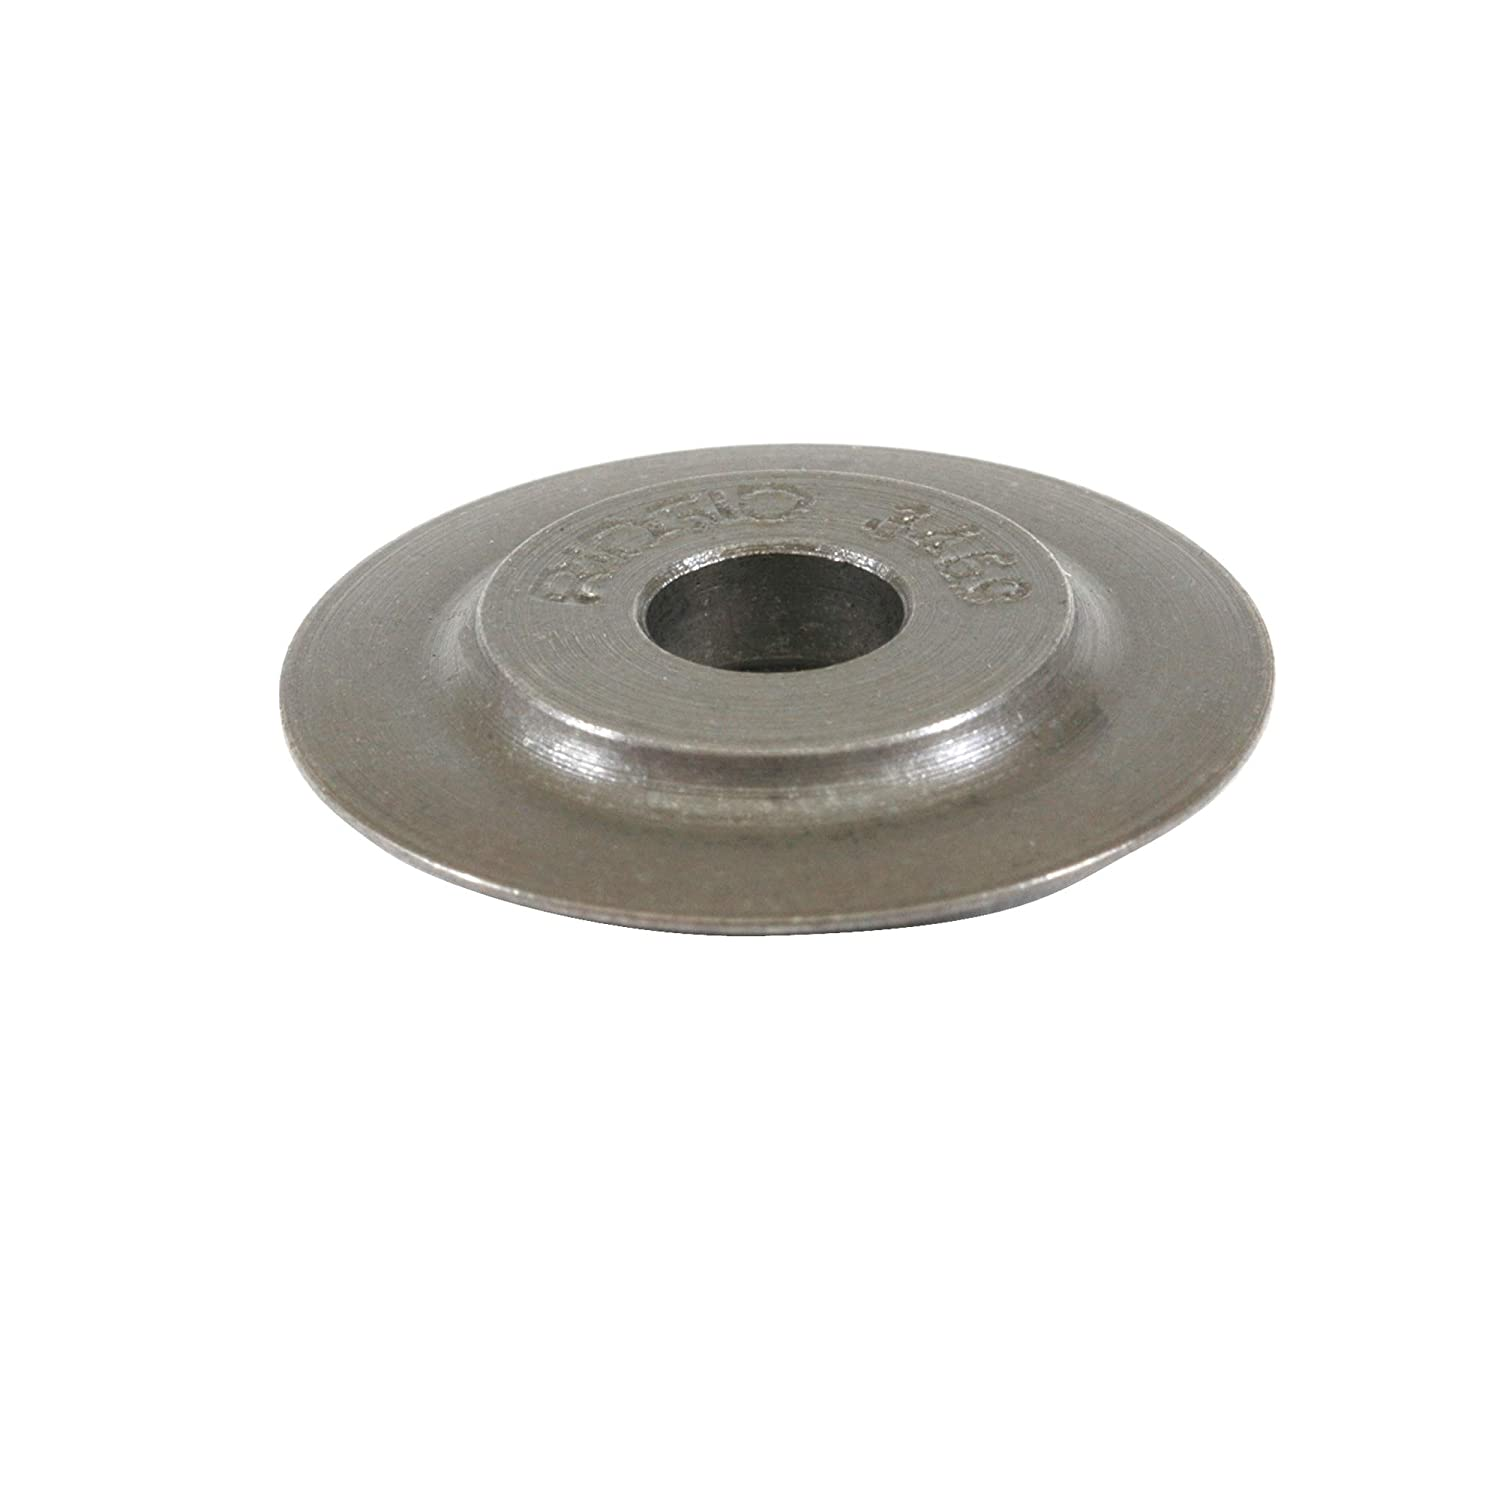 Ridgid 33185 Replacement Wheel for Tubing Cutter